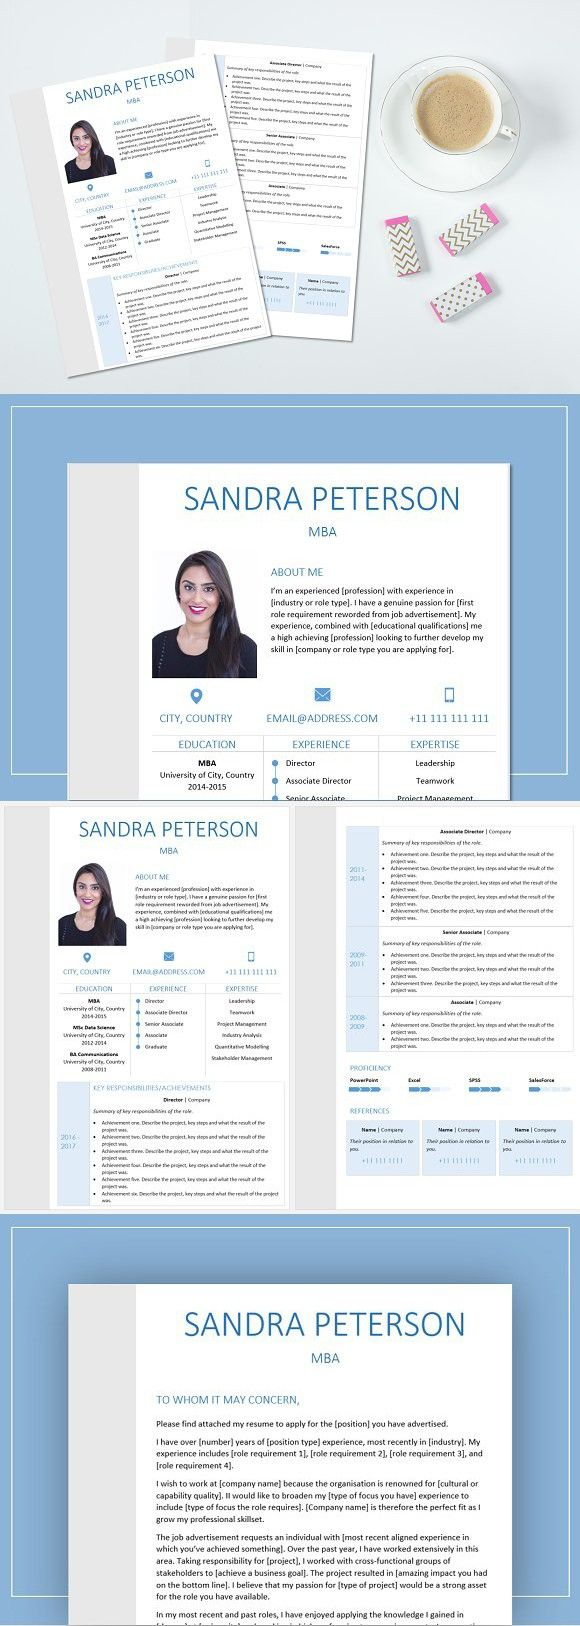 Resume and cover letter Cover letter for resume, Cover